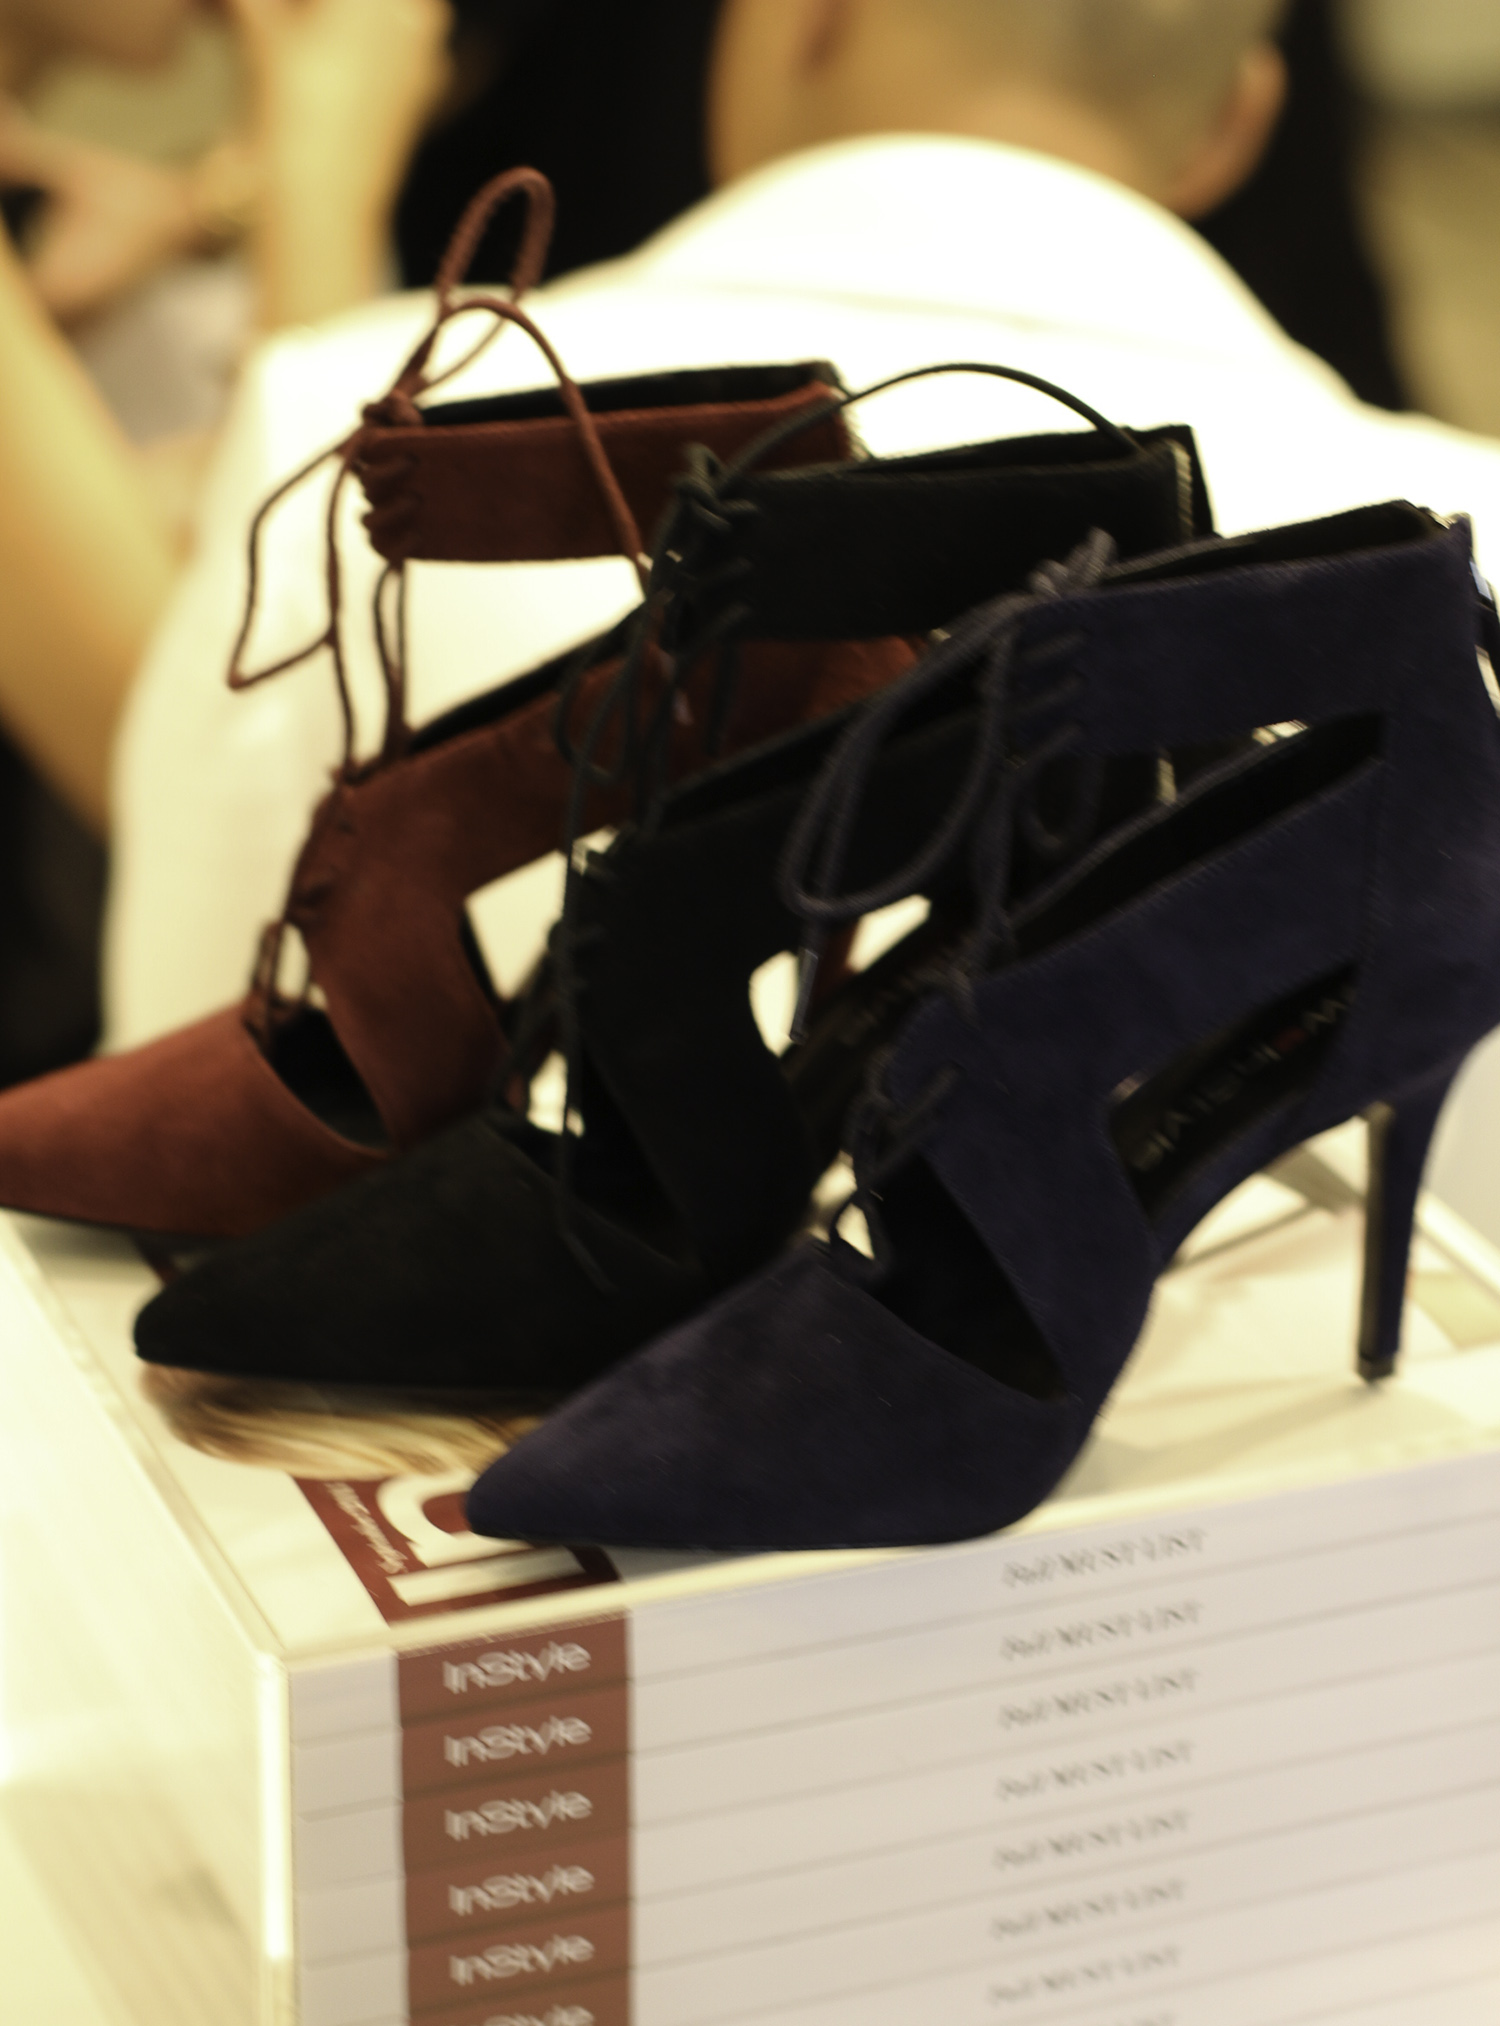 nine west instyle fall 2014 bootie